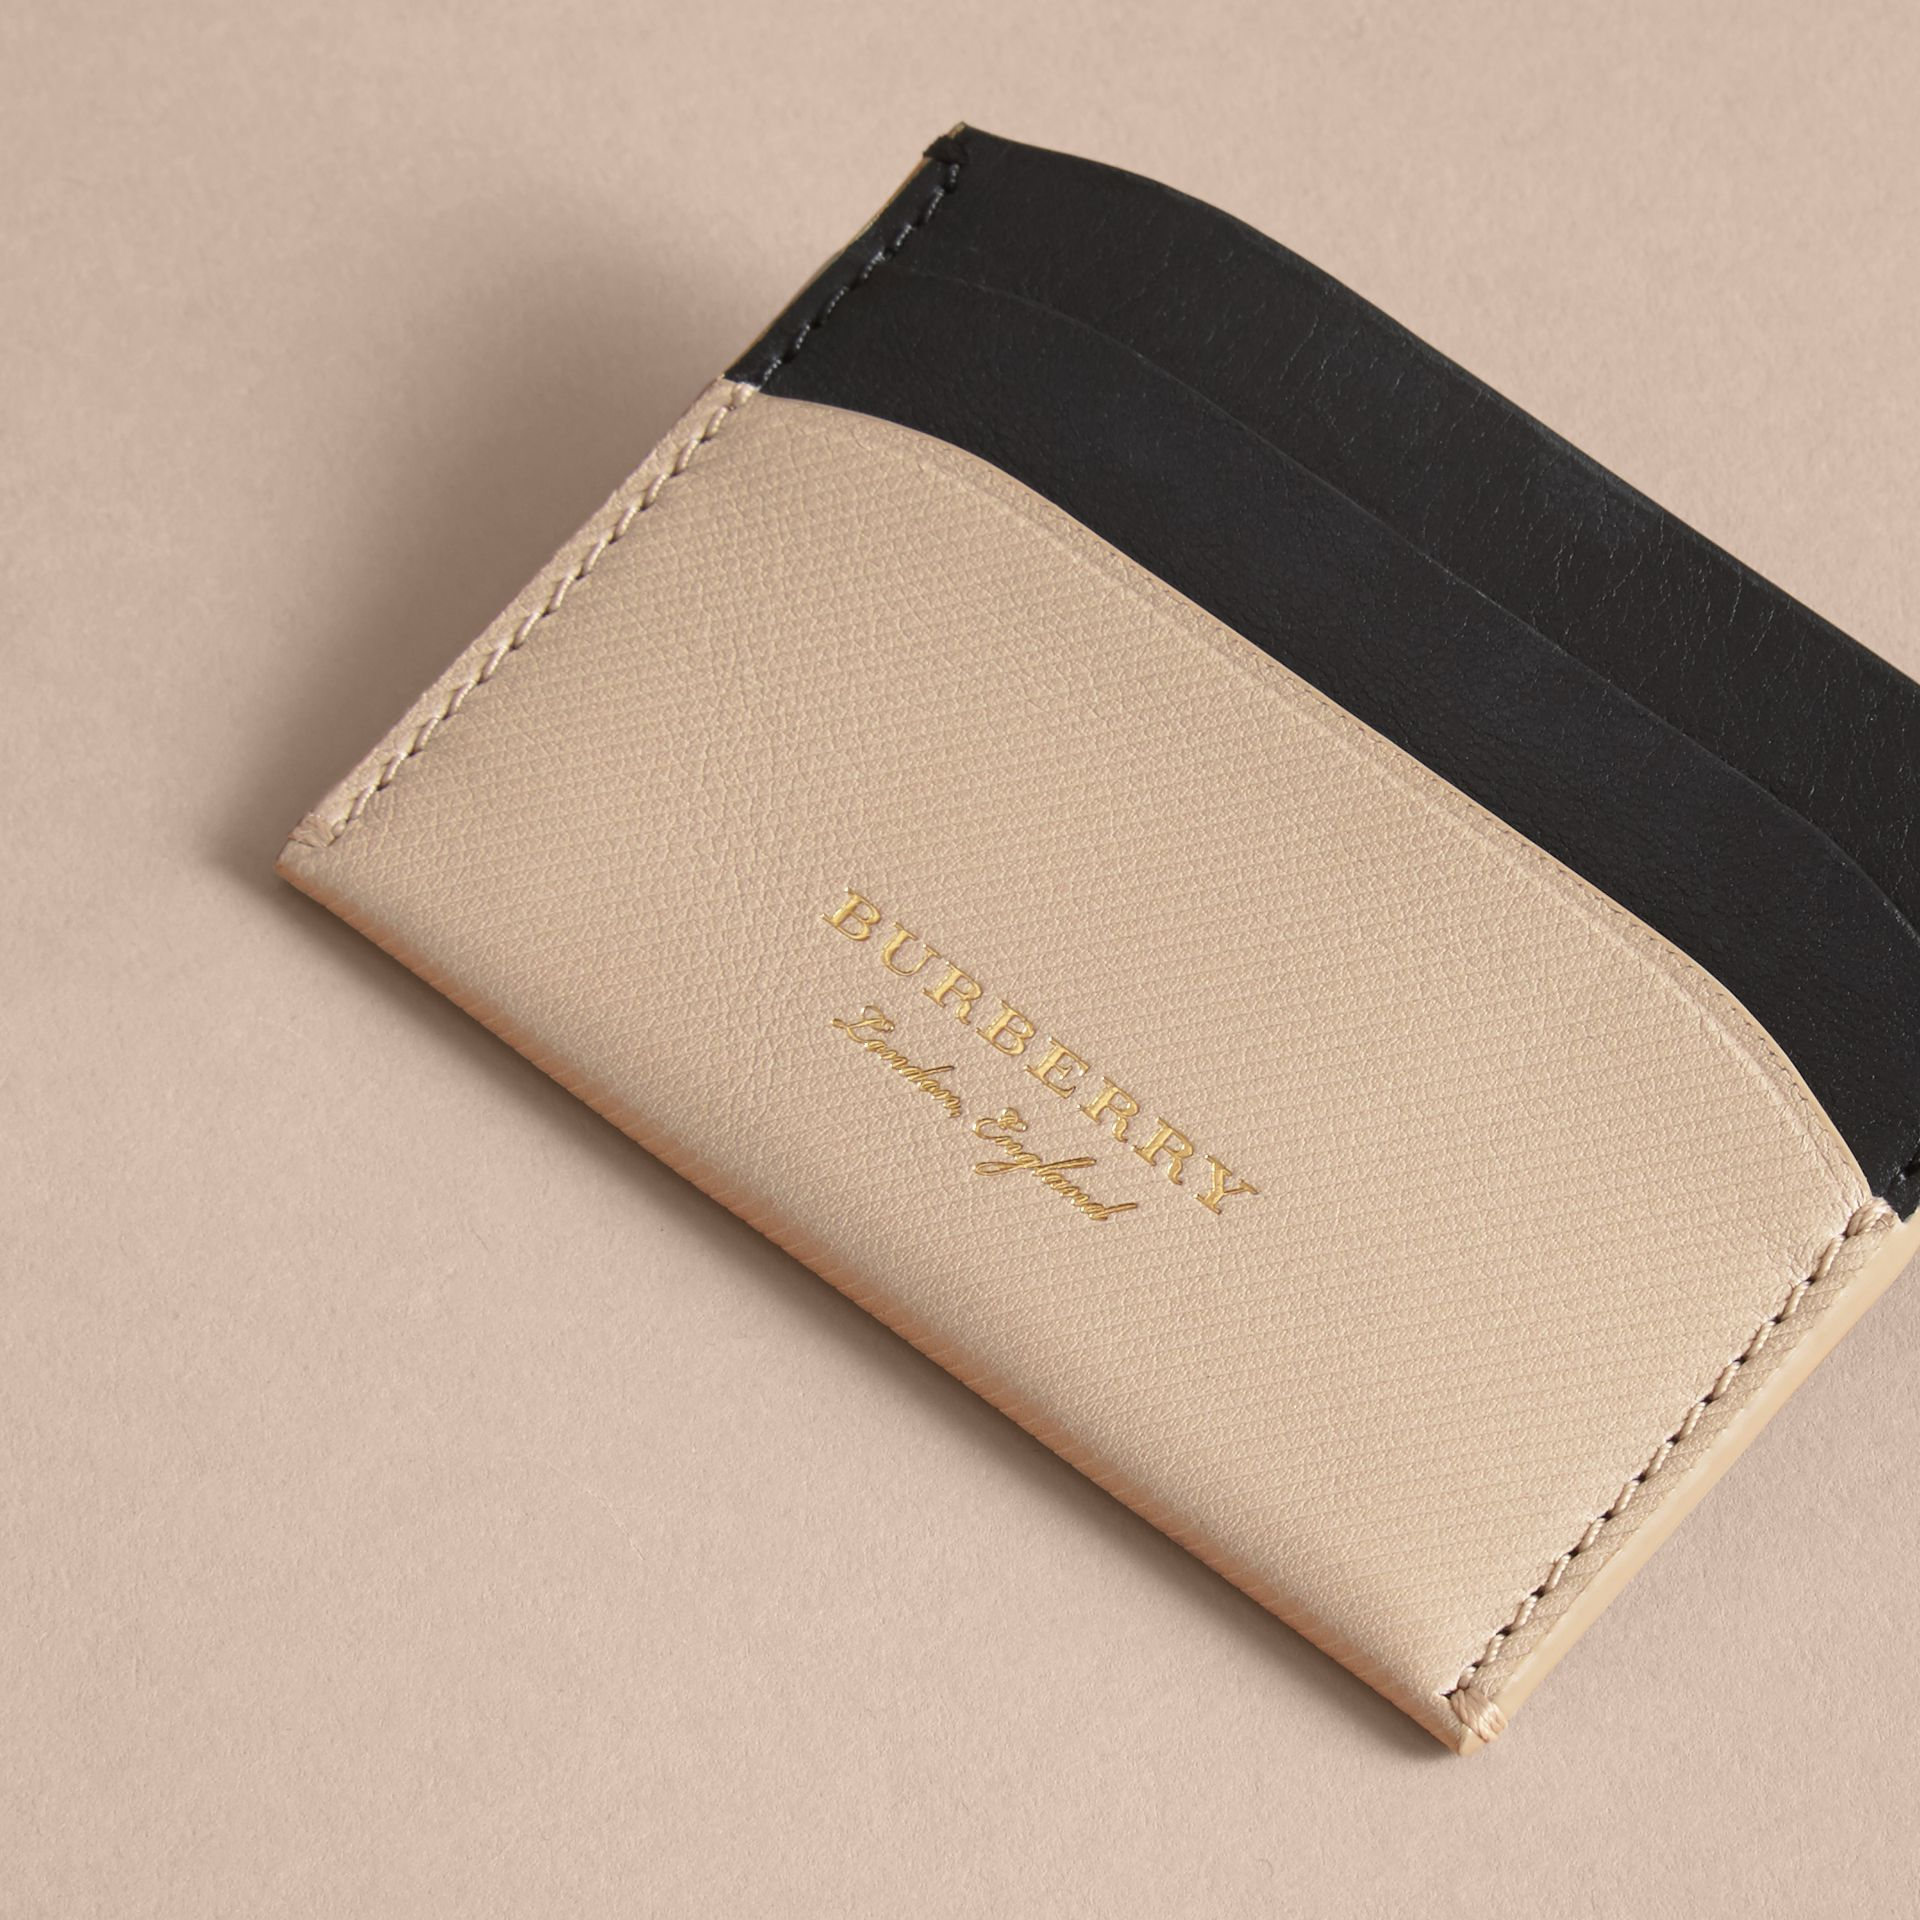 Two-tone Trench Leather Card Case in Limestone/ Black - Women | Burberry United States - gallery image 2